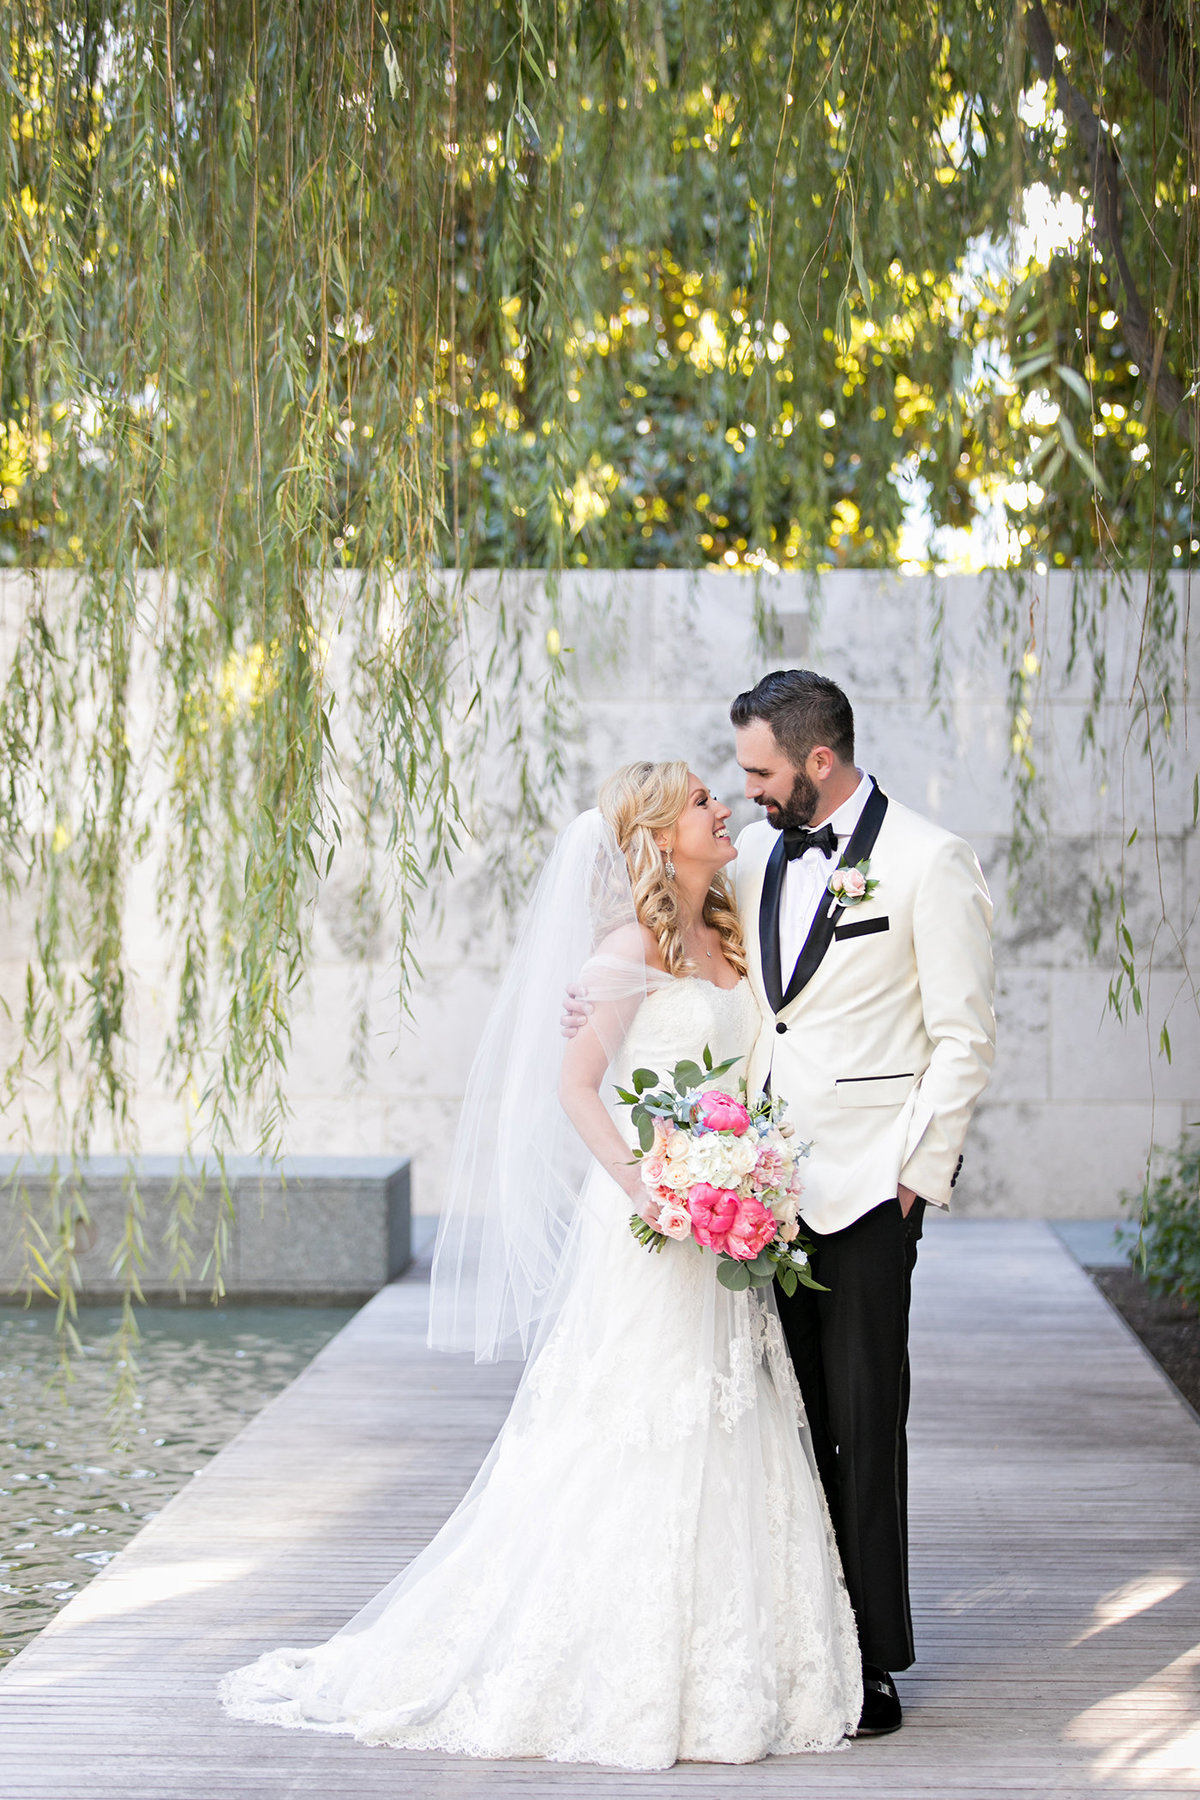 Wedding Planners in Dallas - A Stylish Soiree - Nasher Sculpture Garden - 00172